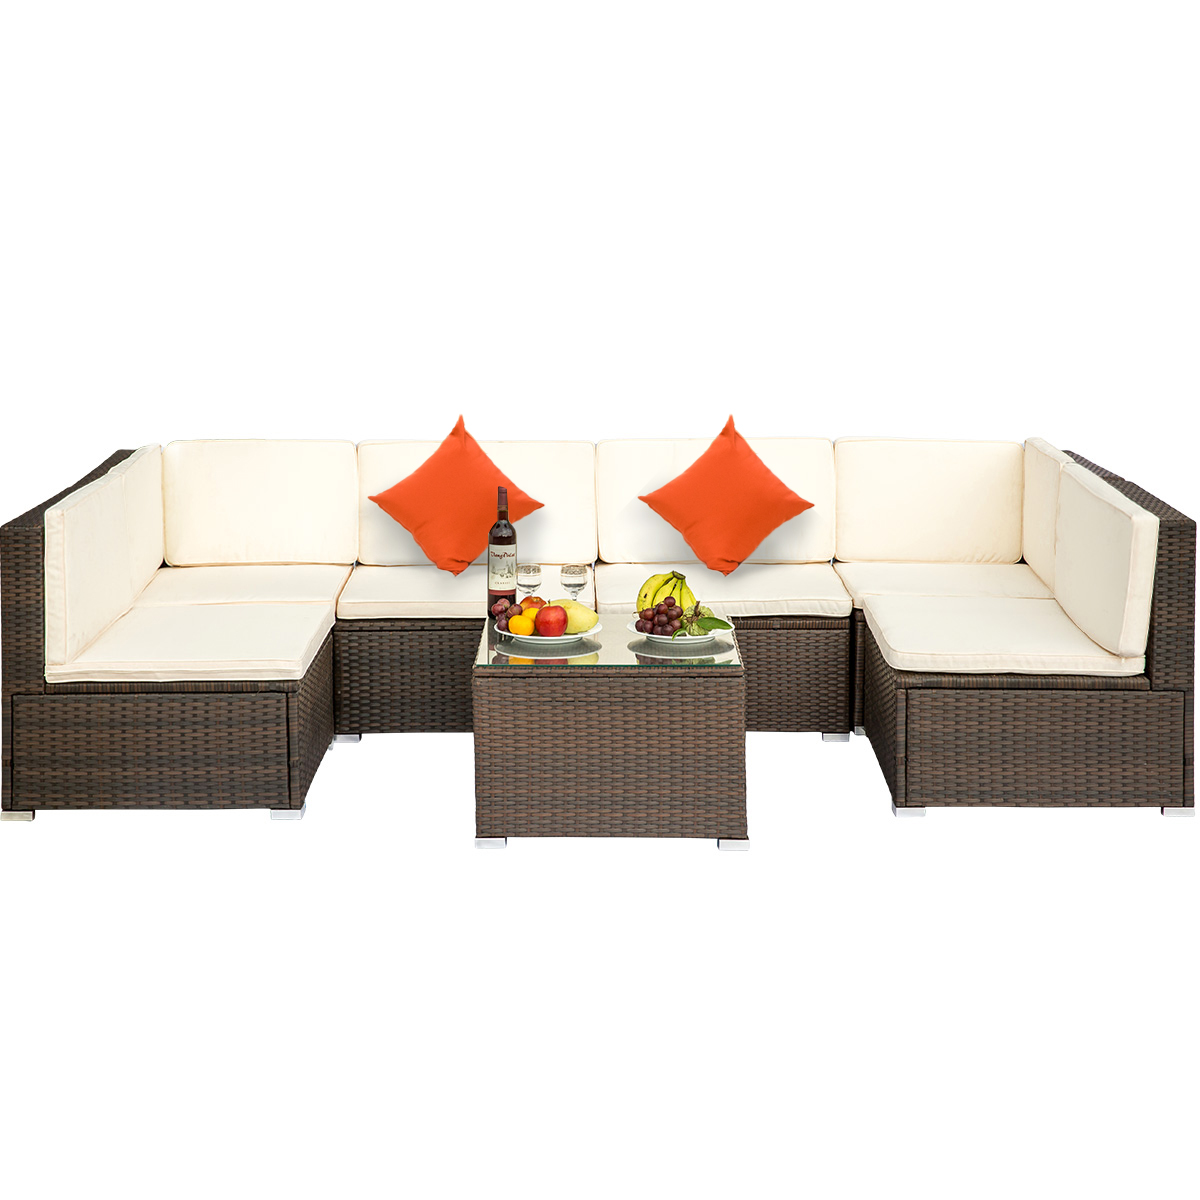 clearance outdoor patio conversation furniture sets 7 piece wicker patio conversation furniture set w 2 corner sofa tempered glass table 4 single